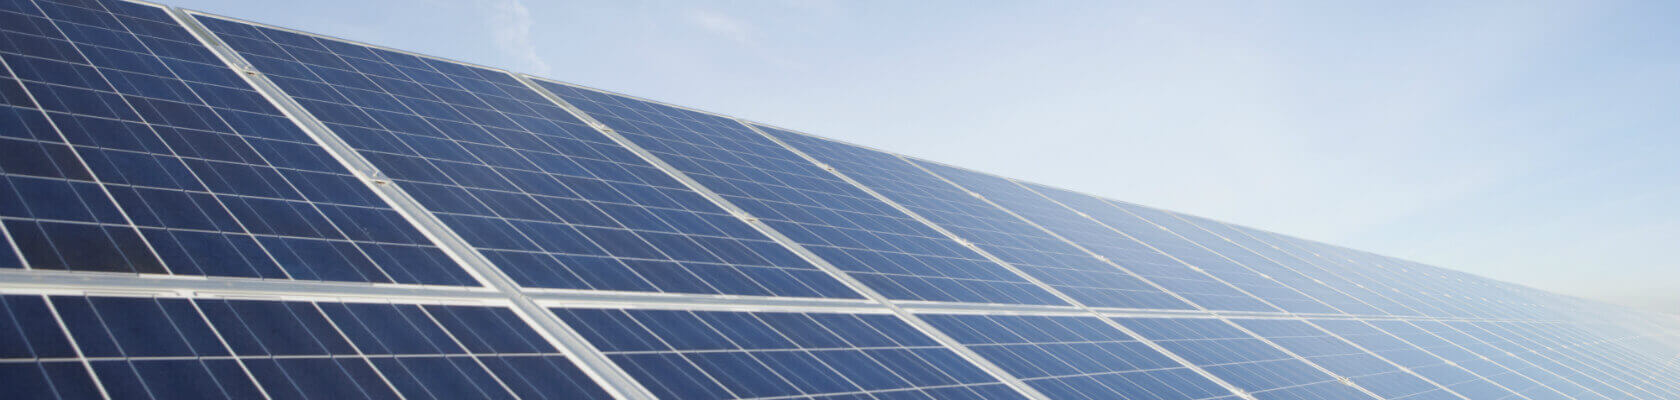 NEW2_SolarPanels_header